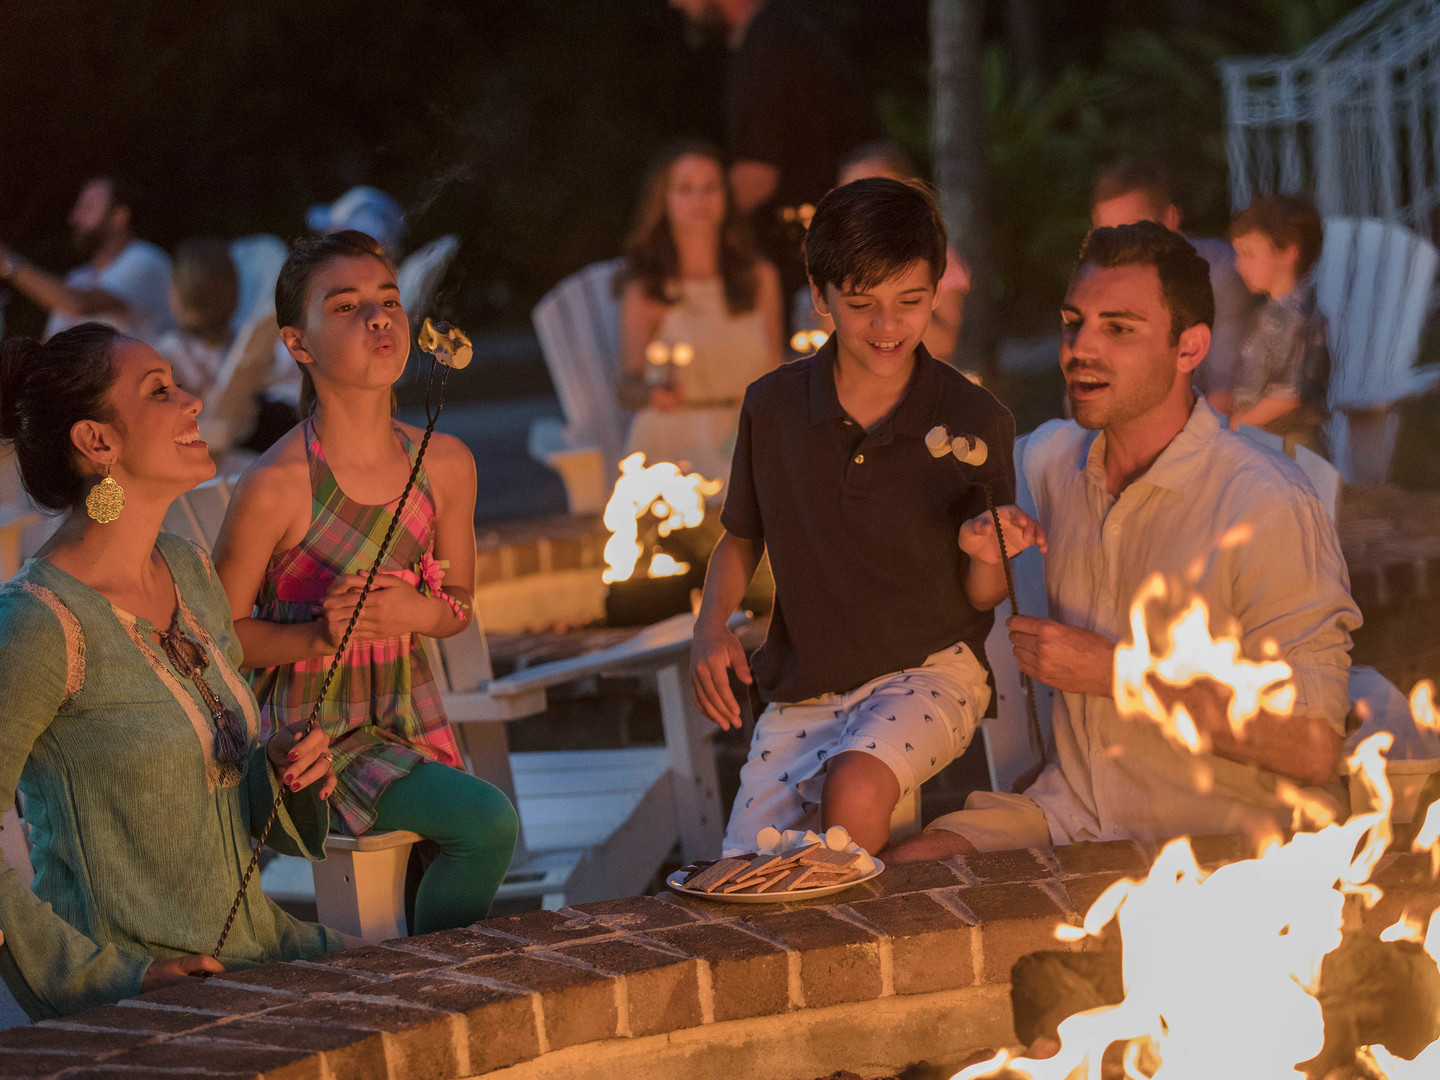 Marriott's SurfWatch<span class='trademark'>®</span> S'mores at Resort Fire Pit. Marriott's SurfWatch<span class='trademark'>®</span> is located in Hilton Head Island, South Carolina United States.